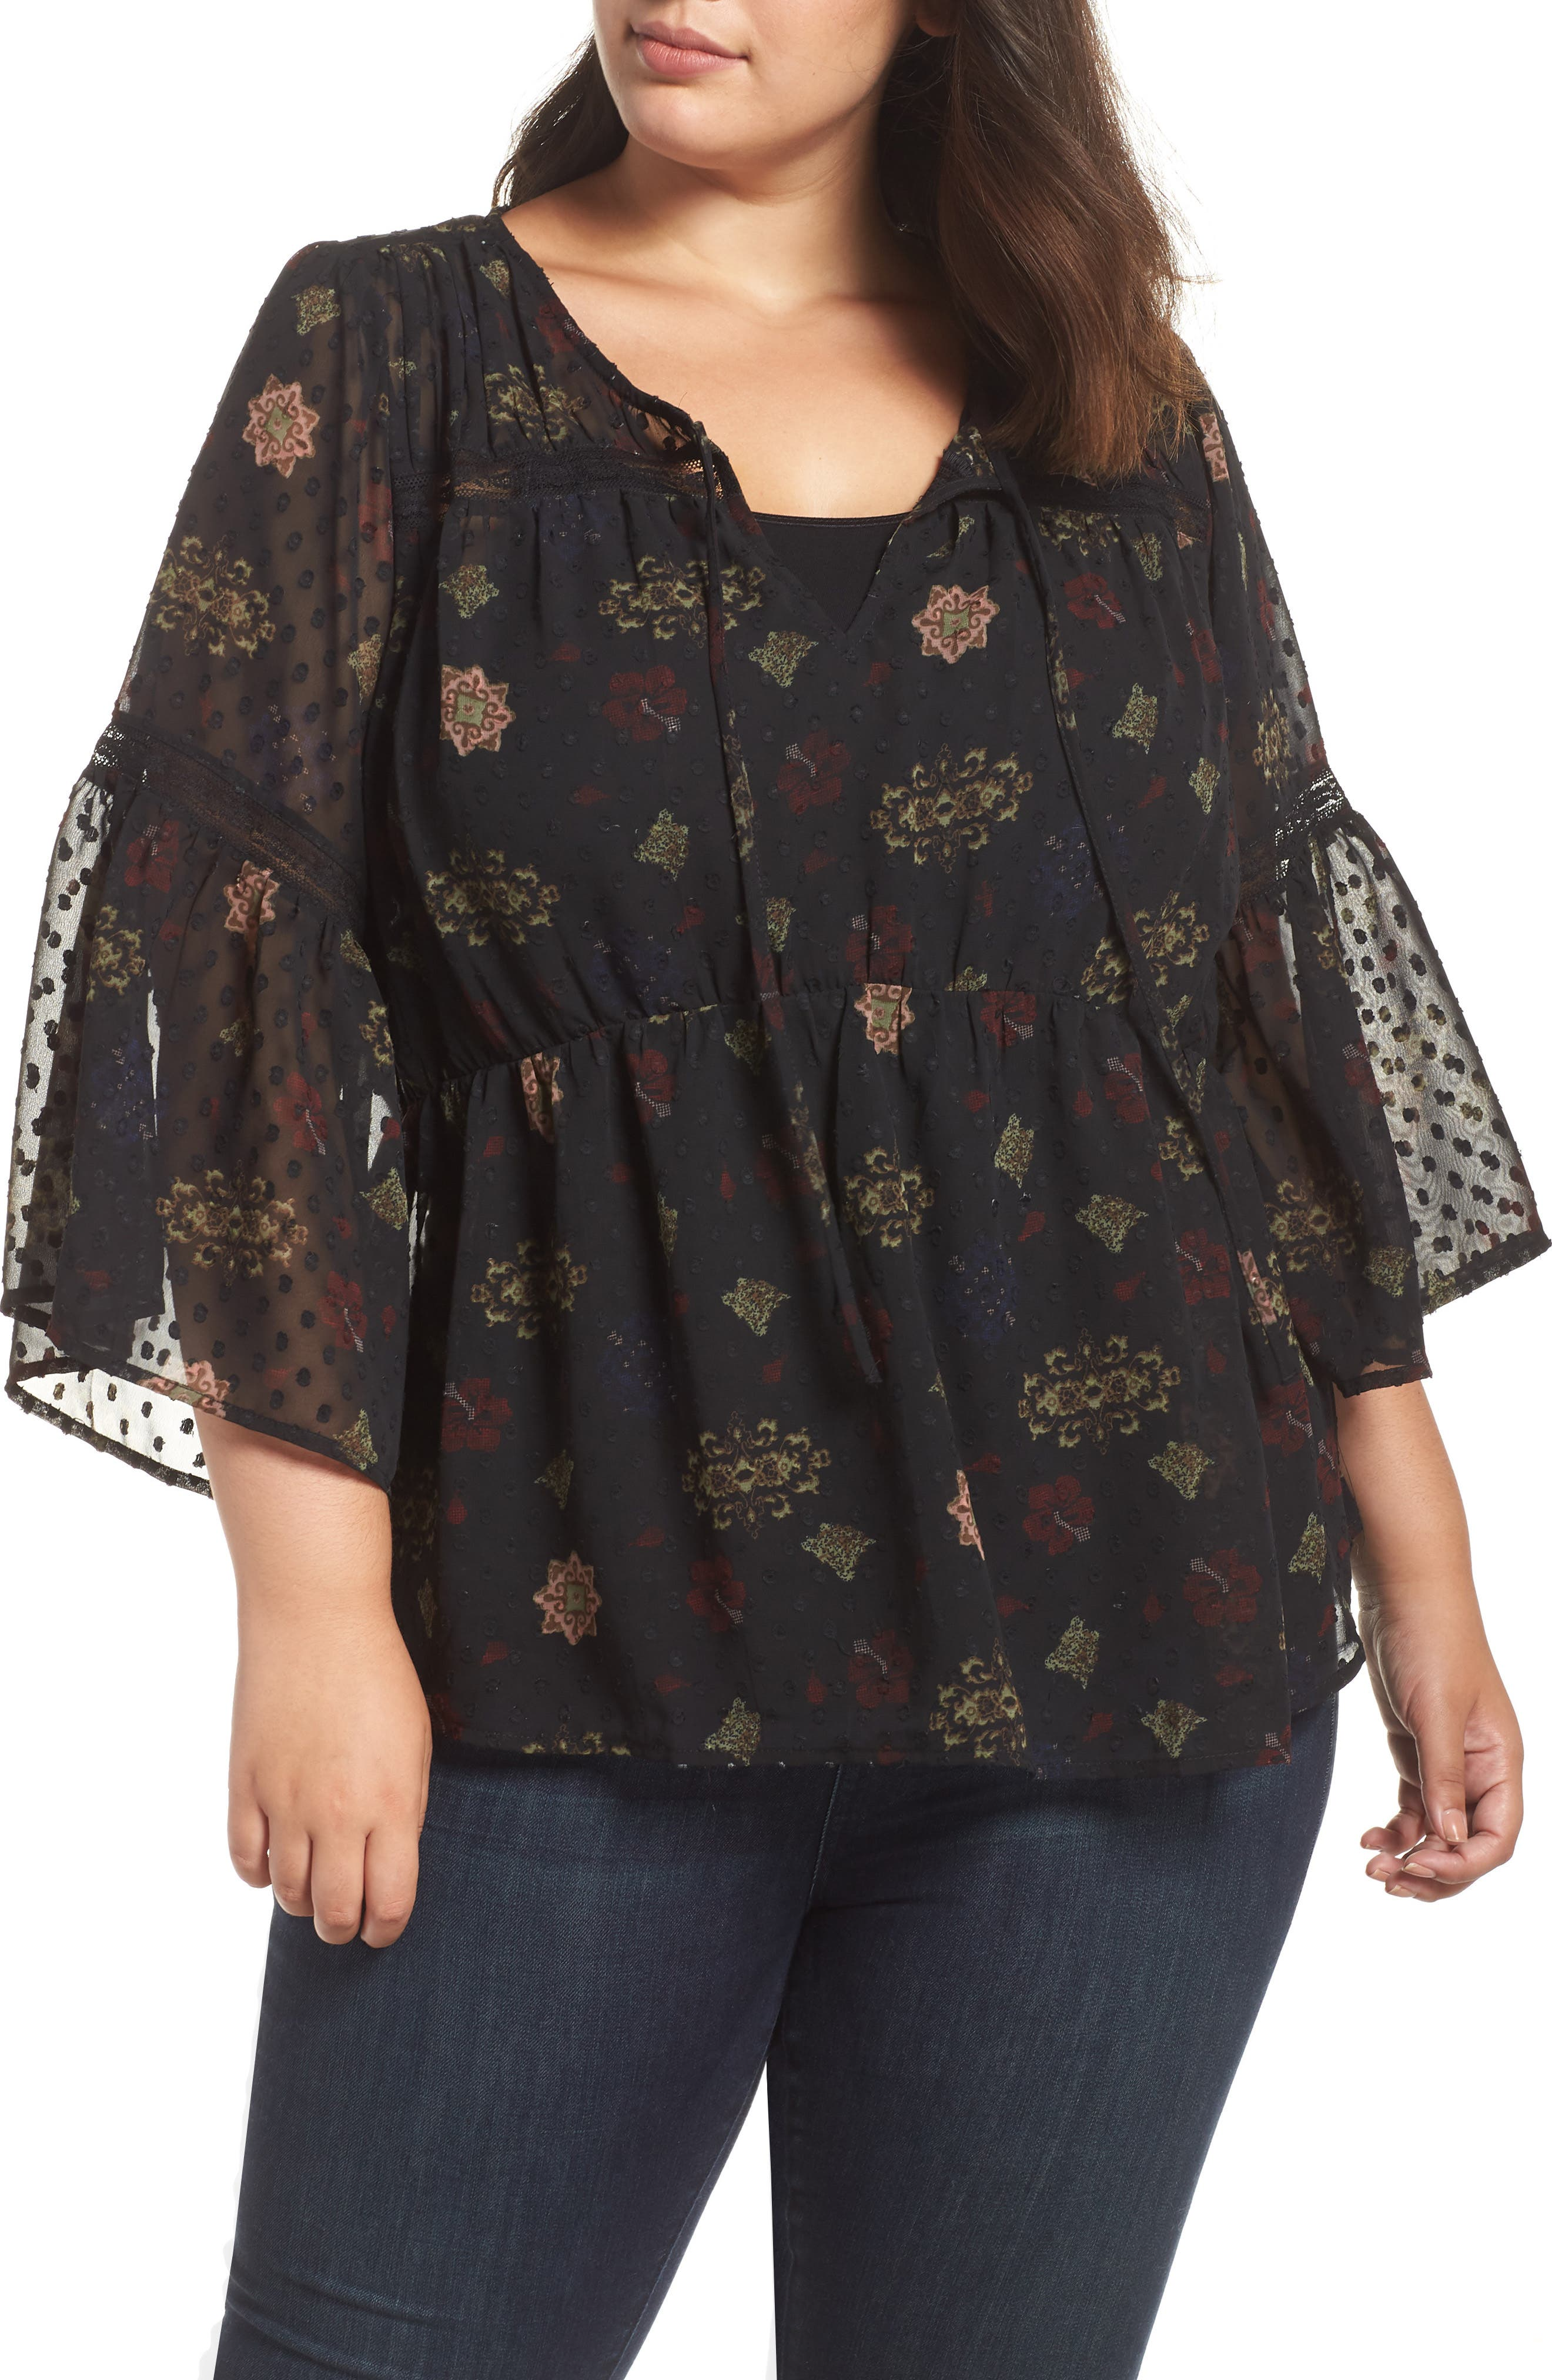 Swiss Dot Floral Top,                         Main,                         color, BLACK MULTI